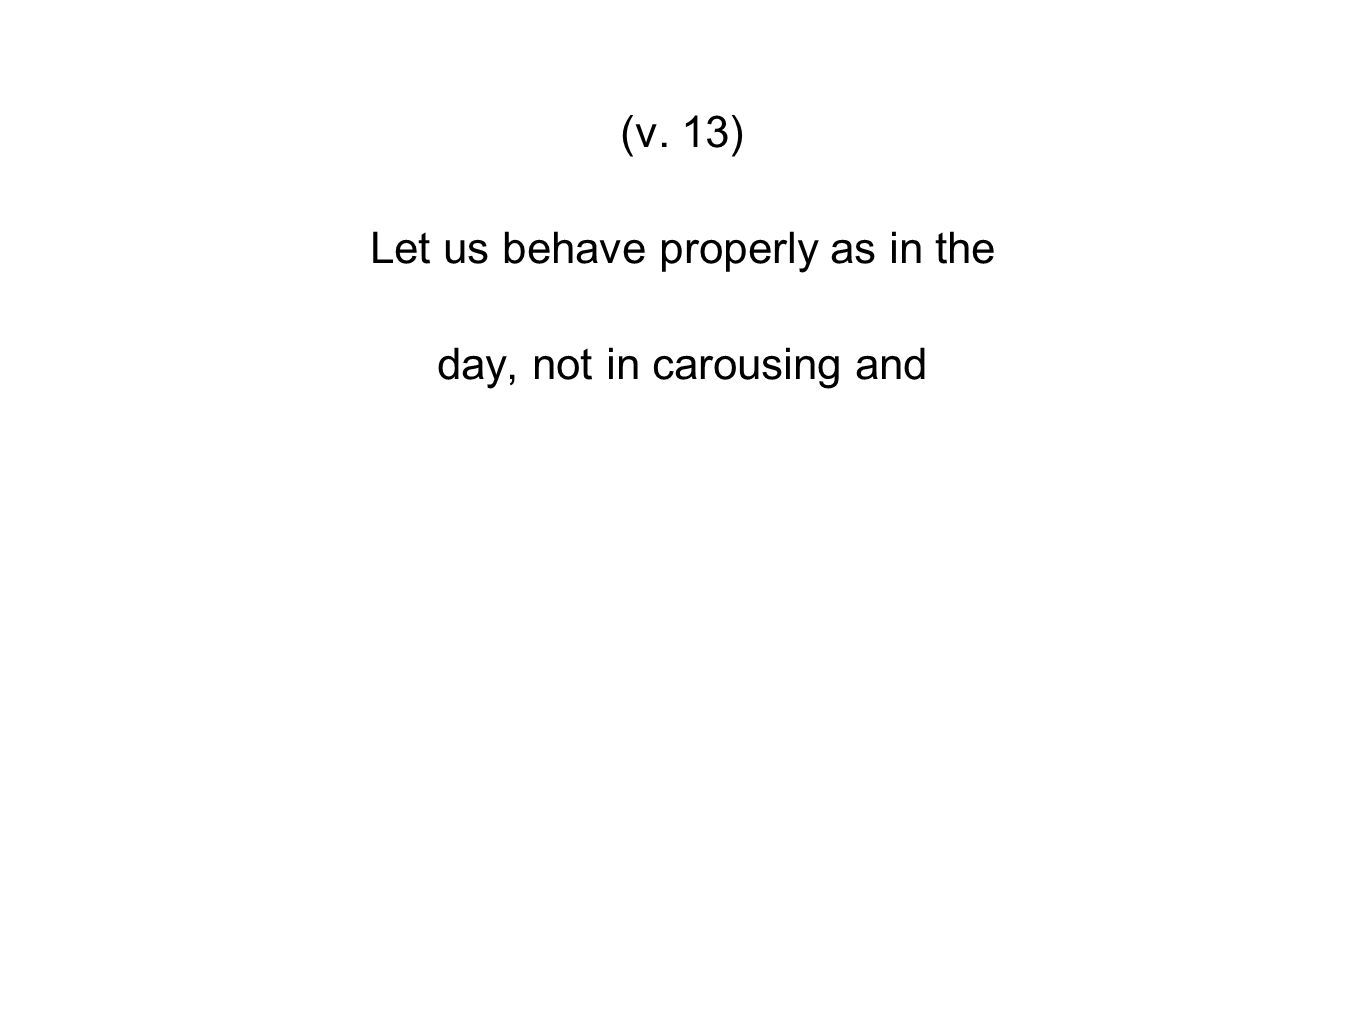 (v. 13) Let us behave properly as in the day, not in carousing and